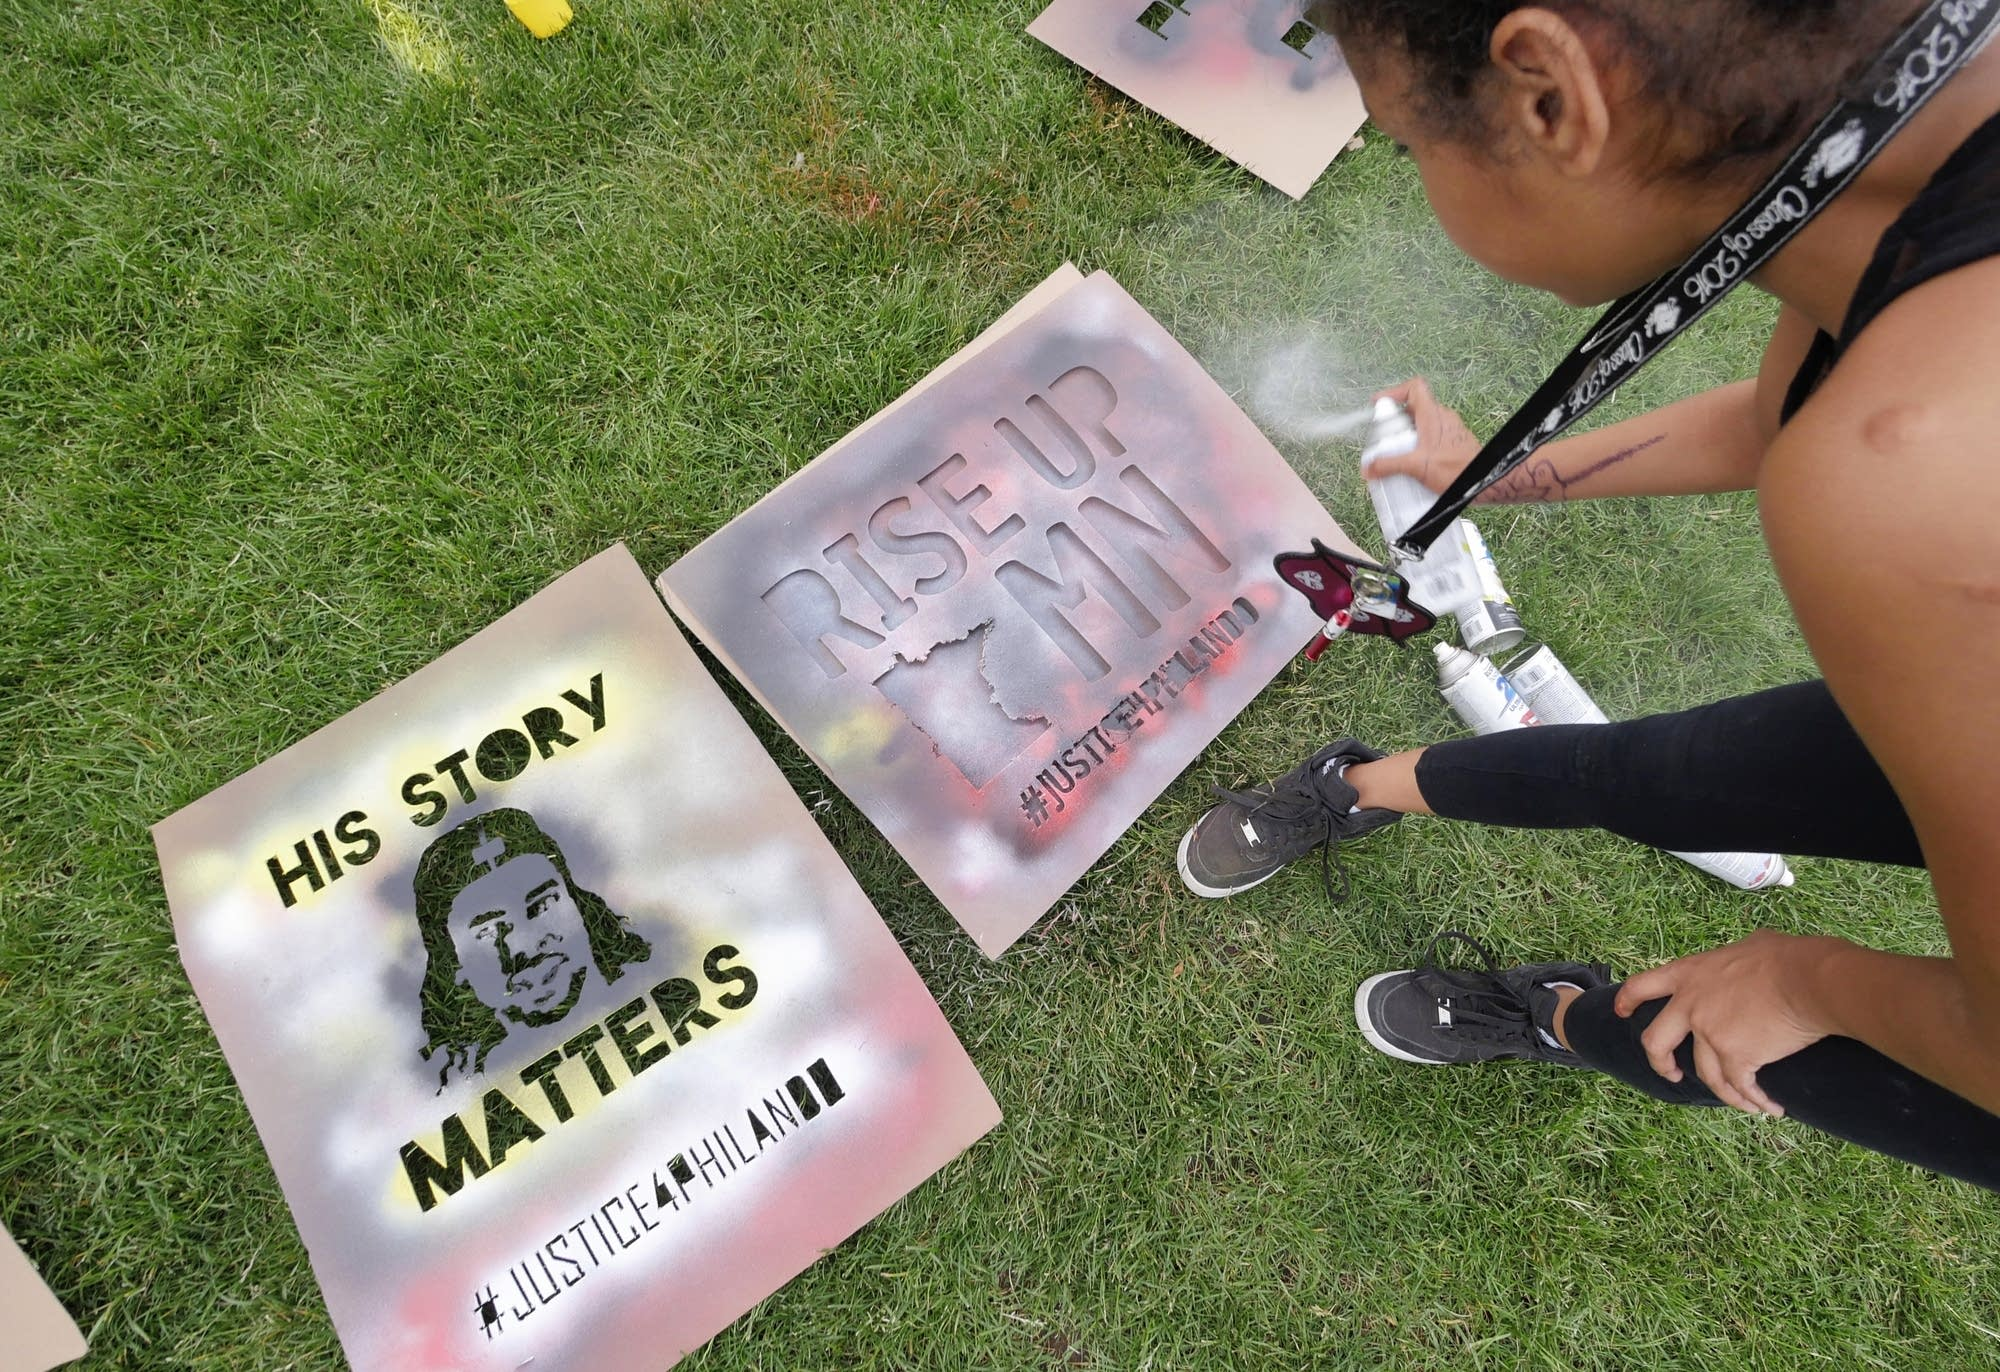 Ruthie Booker, 12, of Minneapolis paints signs.